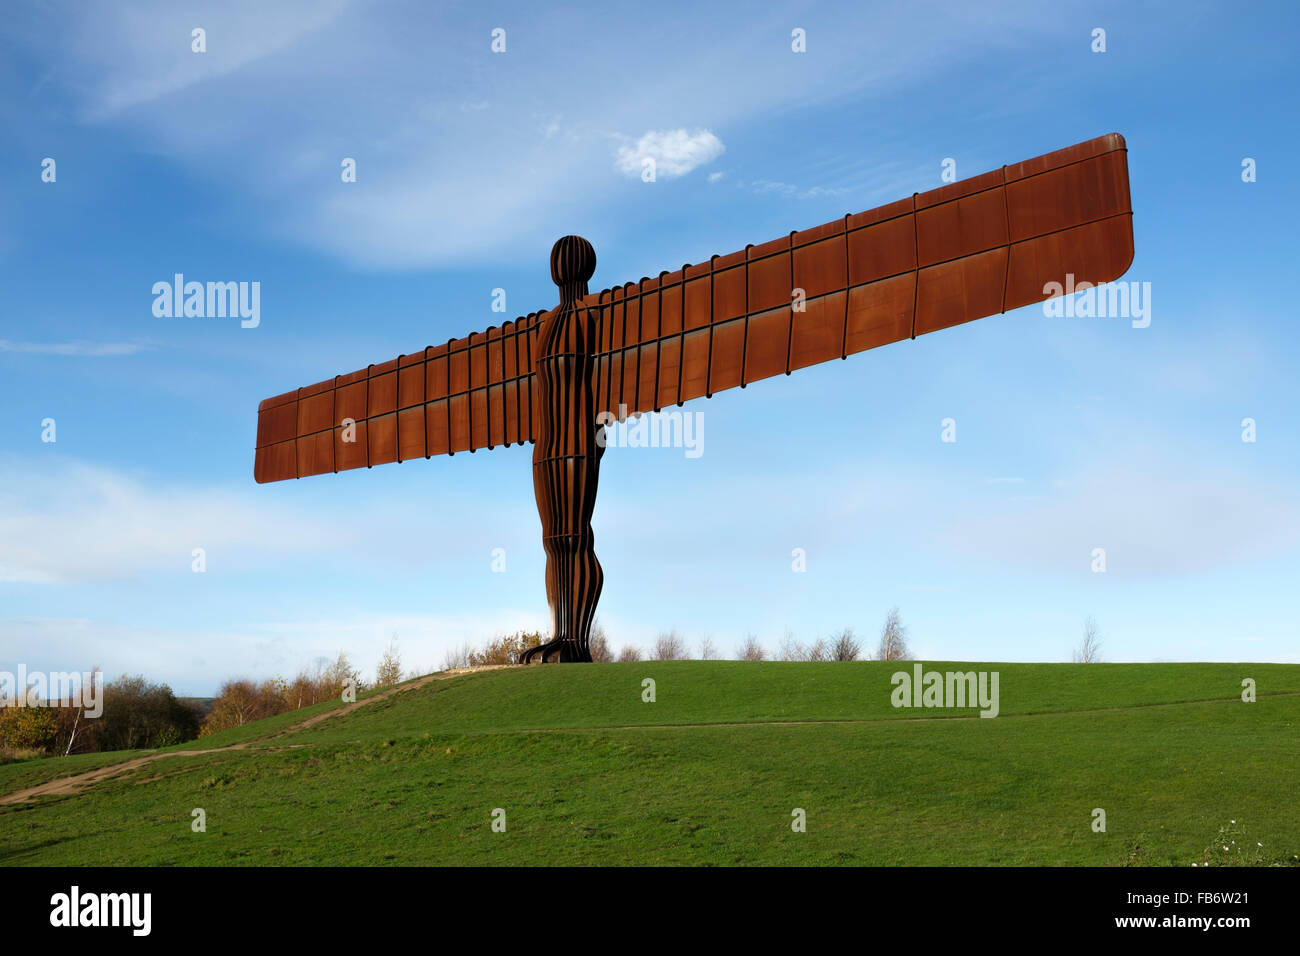 The steel sculpture by Sir Antony Gormley, of the Angel of the North, near Gateshead, England. - Stock Image